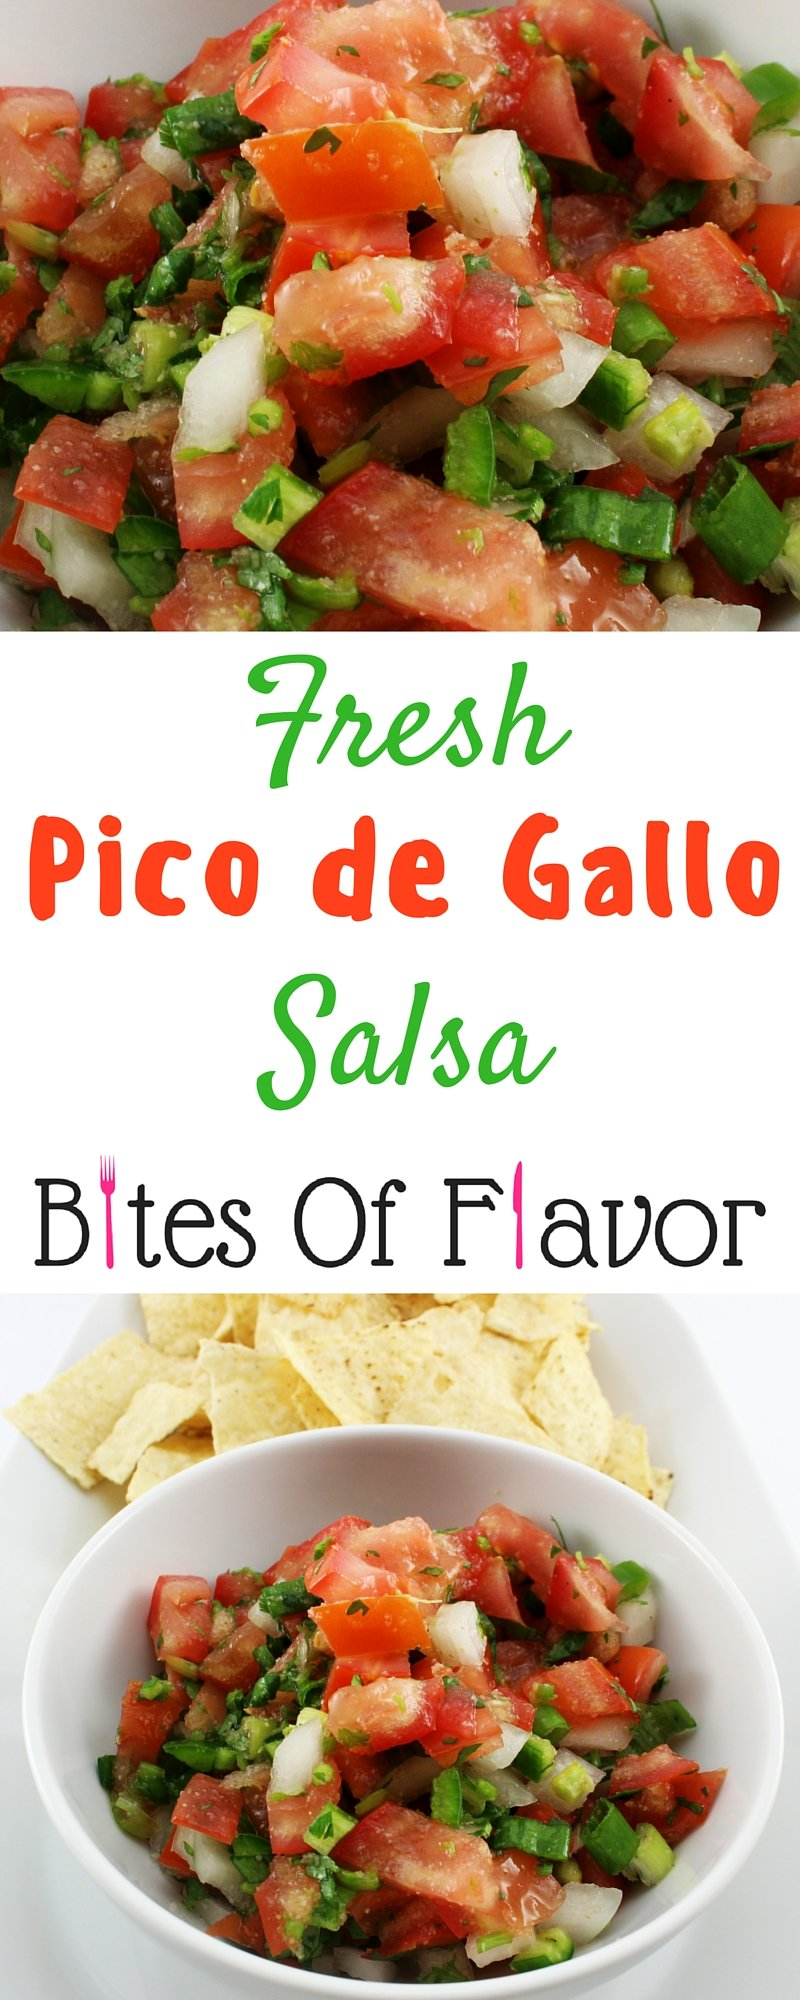 Fresh pico de gallo salsa recipe that is easy to make, delicious, and a crowd pleasure! This salsa is perfect for fajitas, tacos, and eggs. Weight Watchers friendly recipe! www.bitesofflavor.com